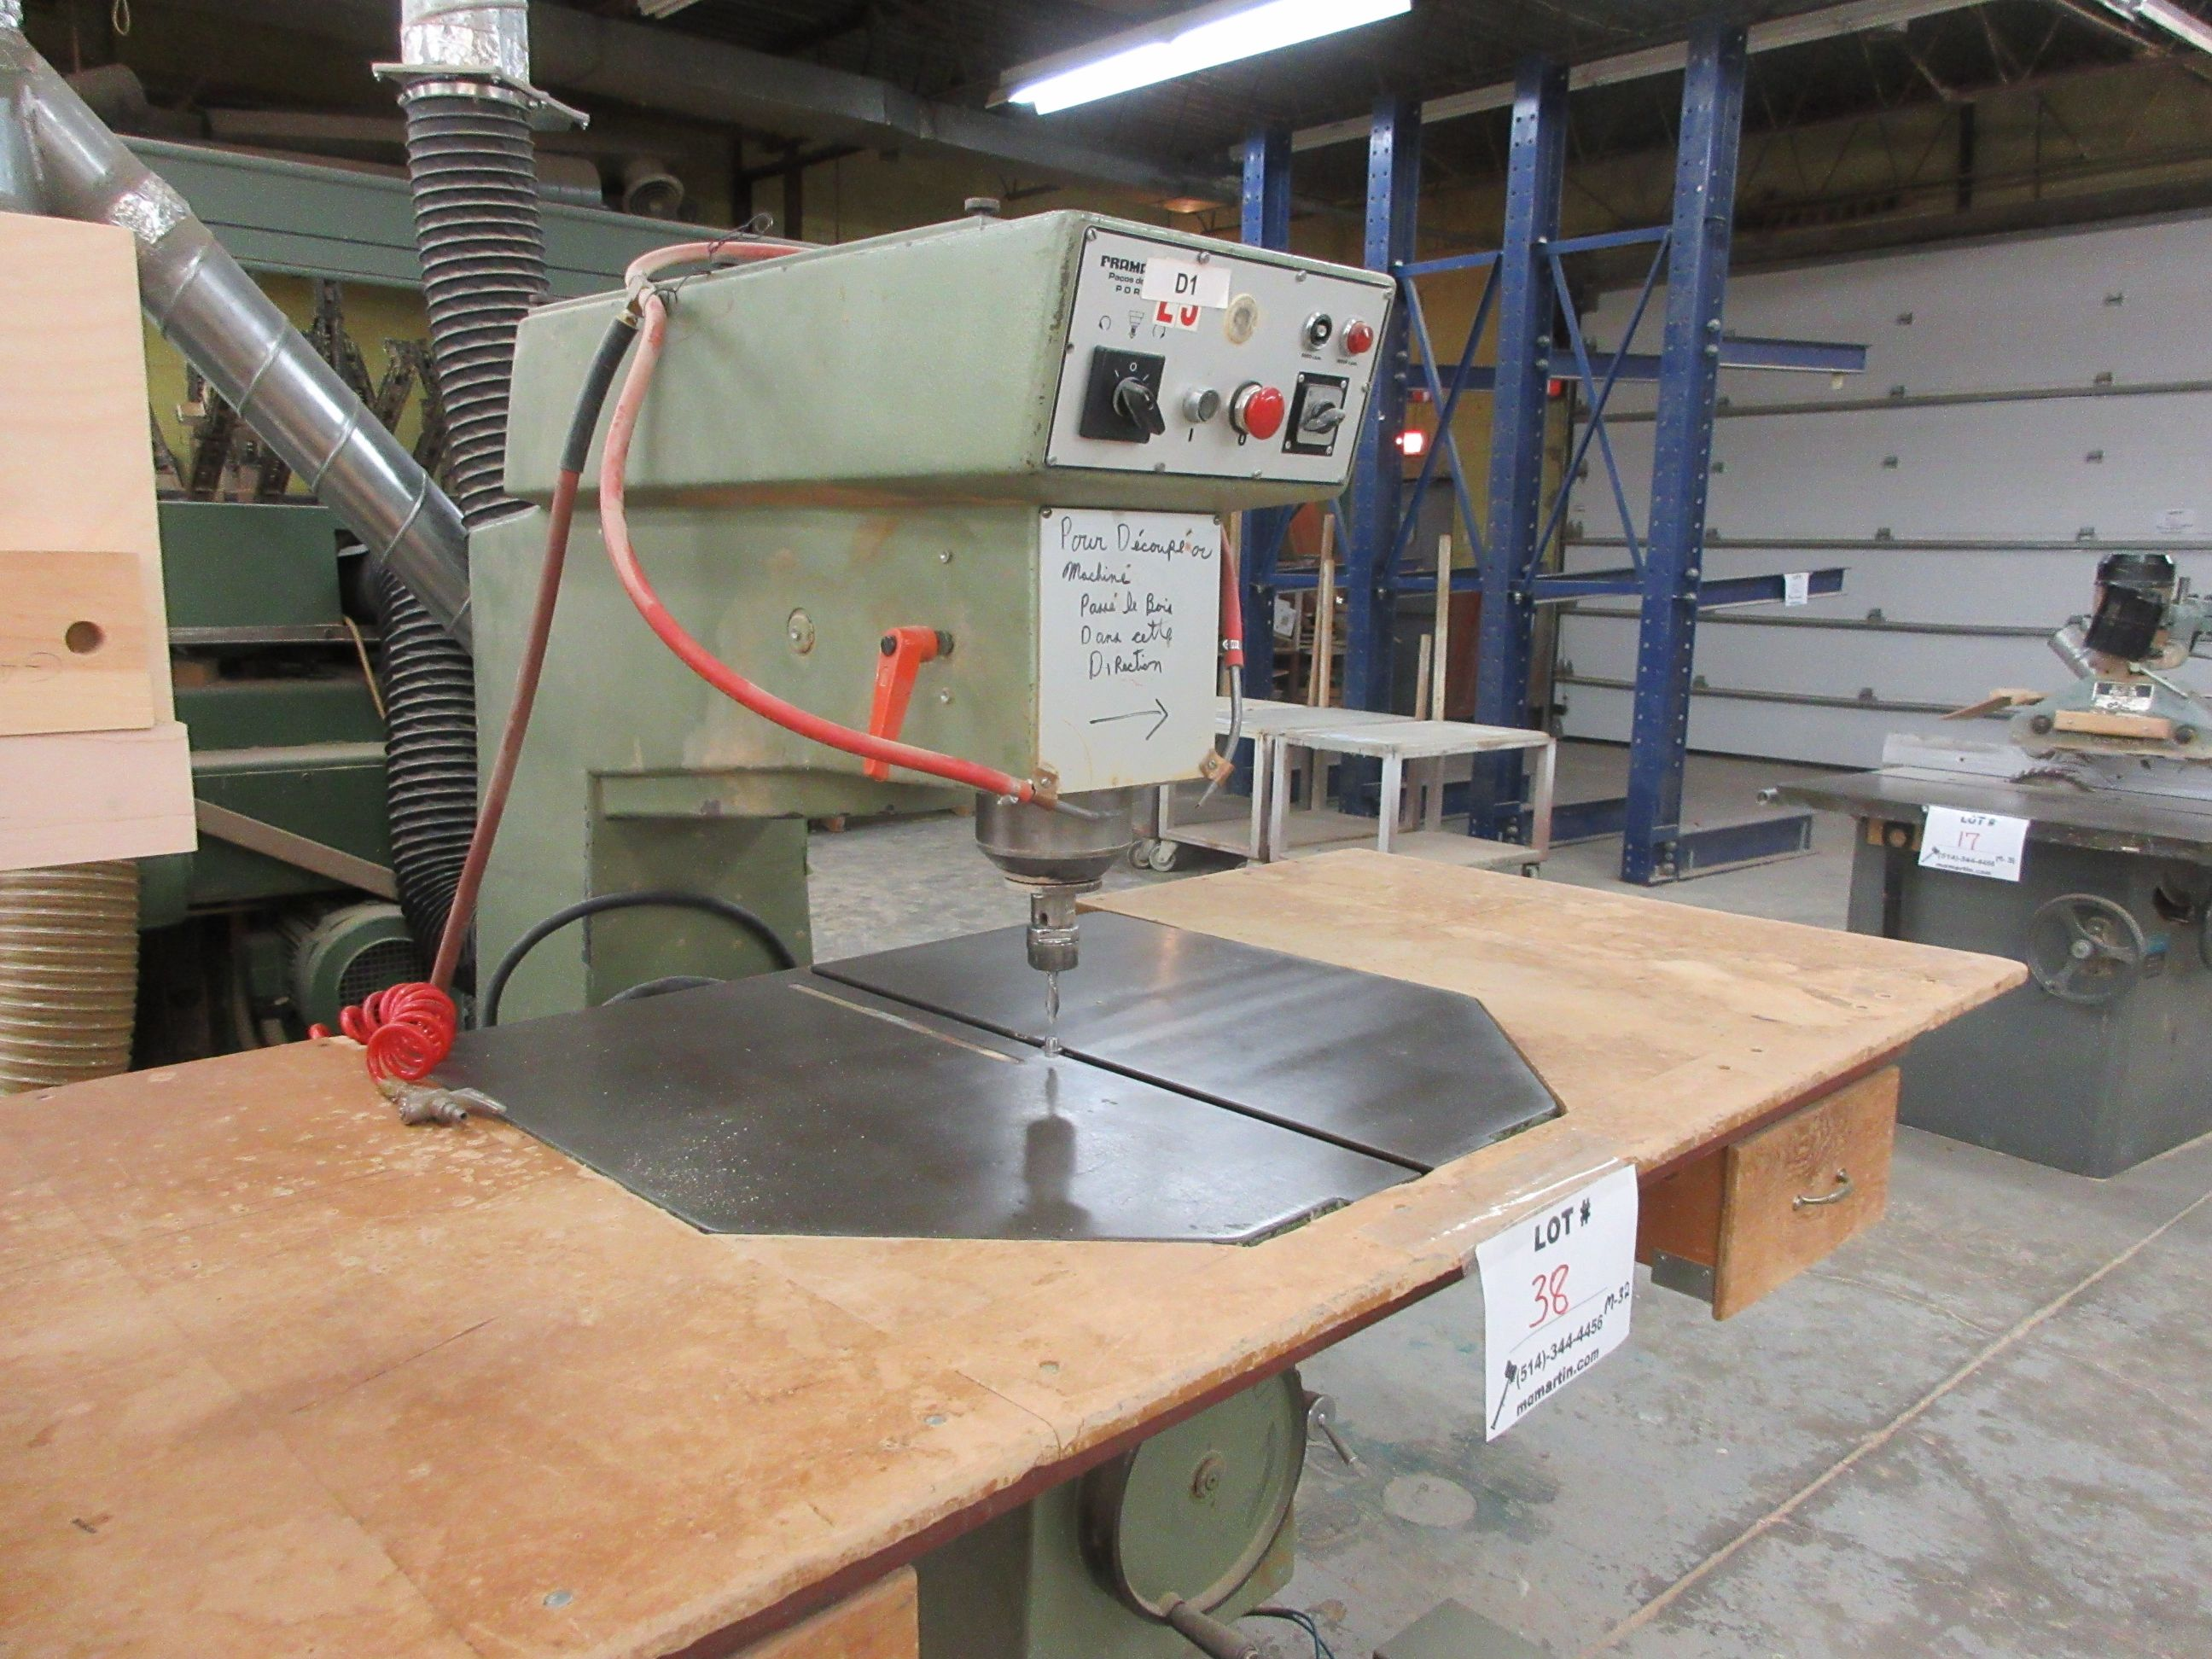 FRAMA overhead router, Mod: R-600, 600 volts (SUBJECT TO BANK APPROVAL) - Image 2 of 3